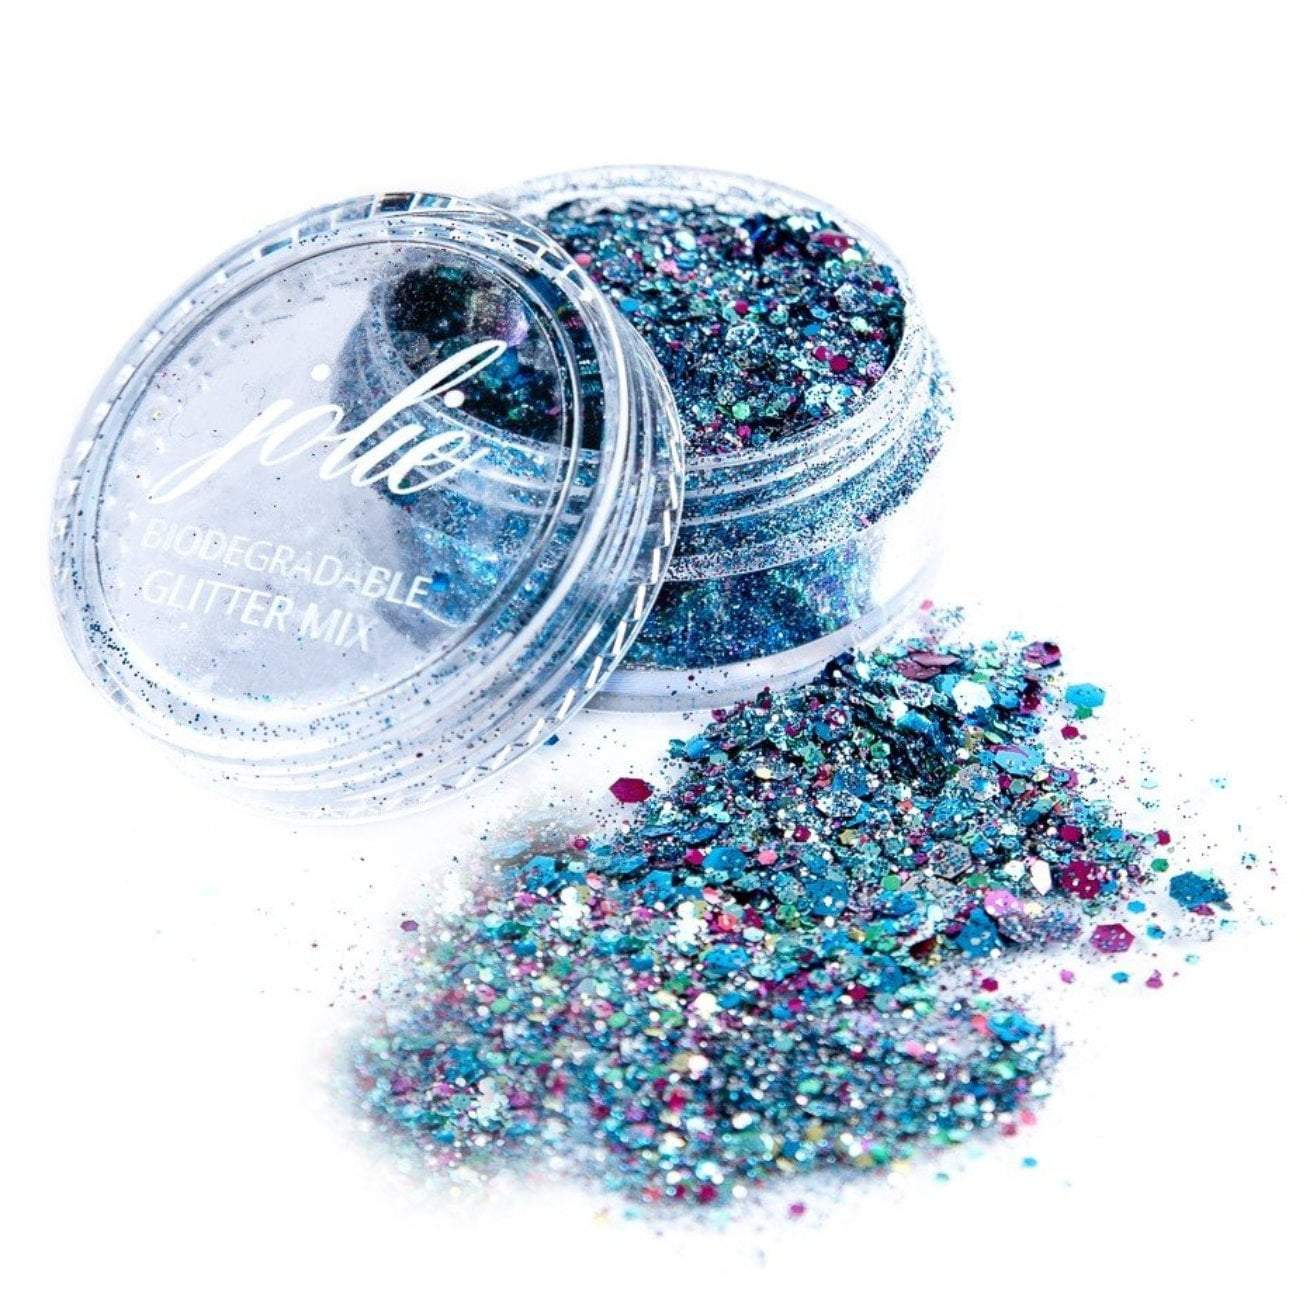 Biodegradable Chunky Mixed Festival Glitter - Intergalatic